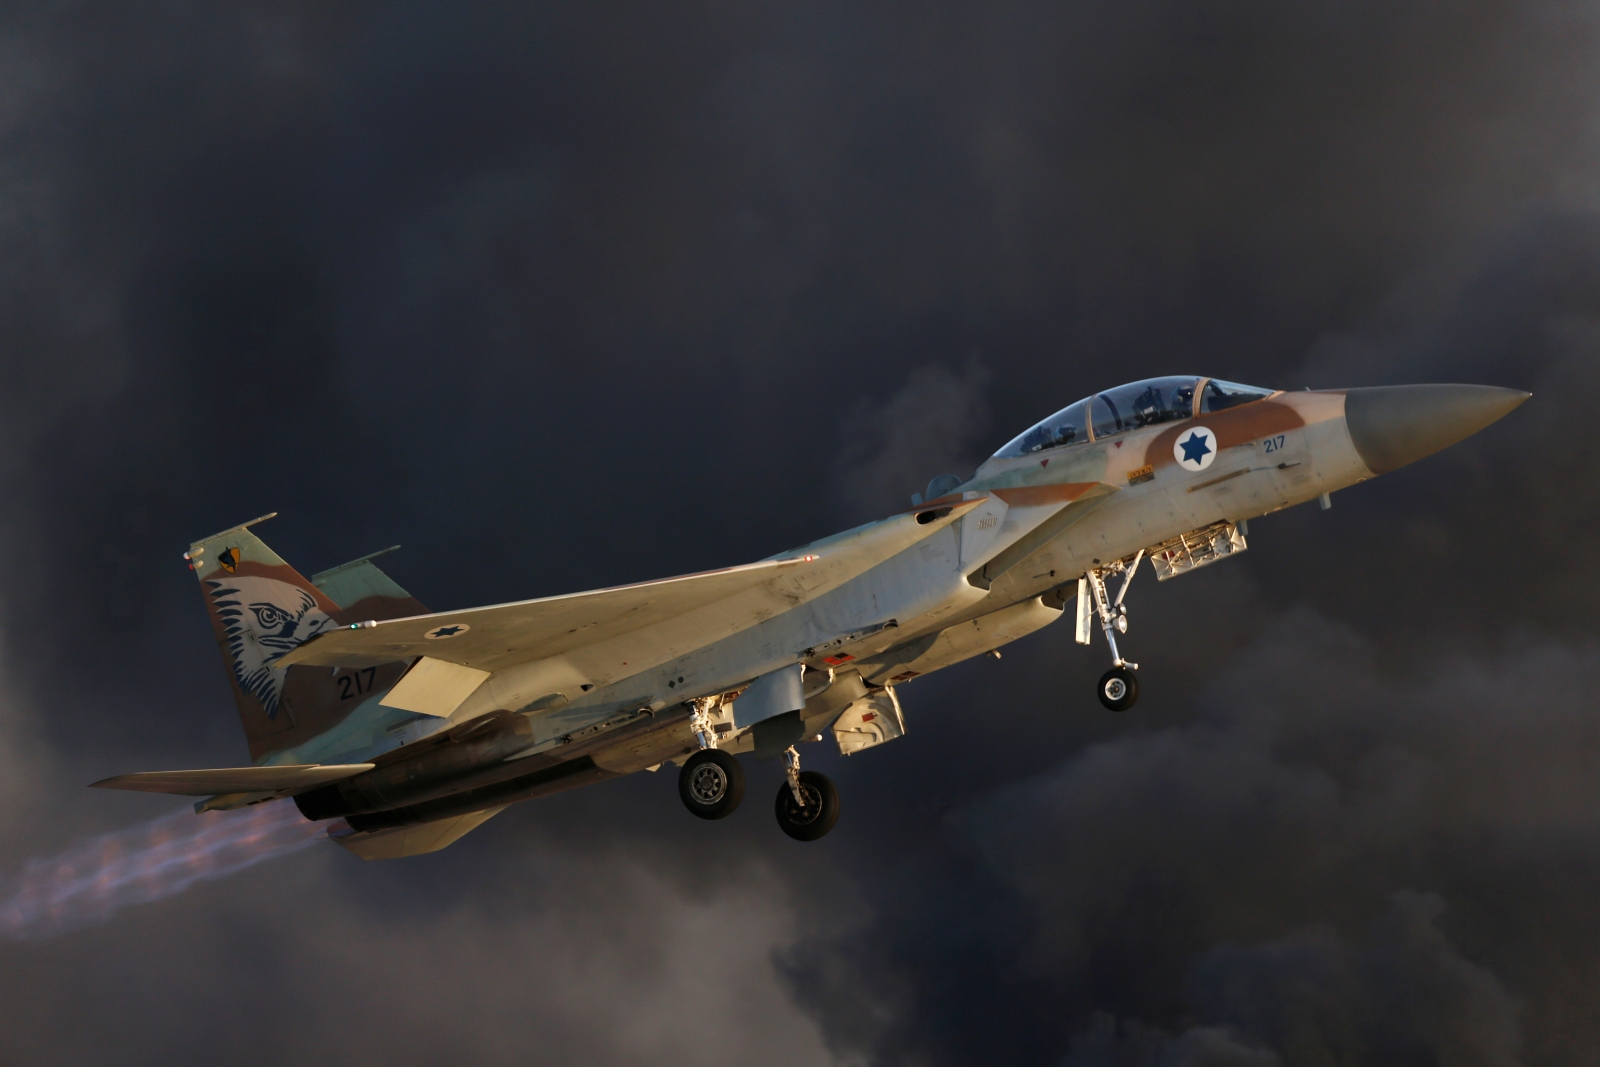 An Israeli Air Force F-15 fighter jet